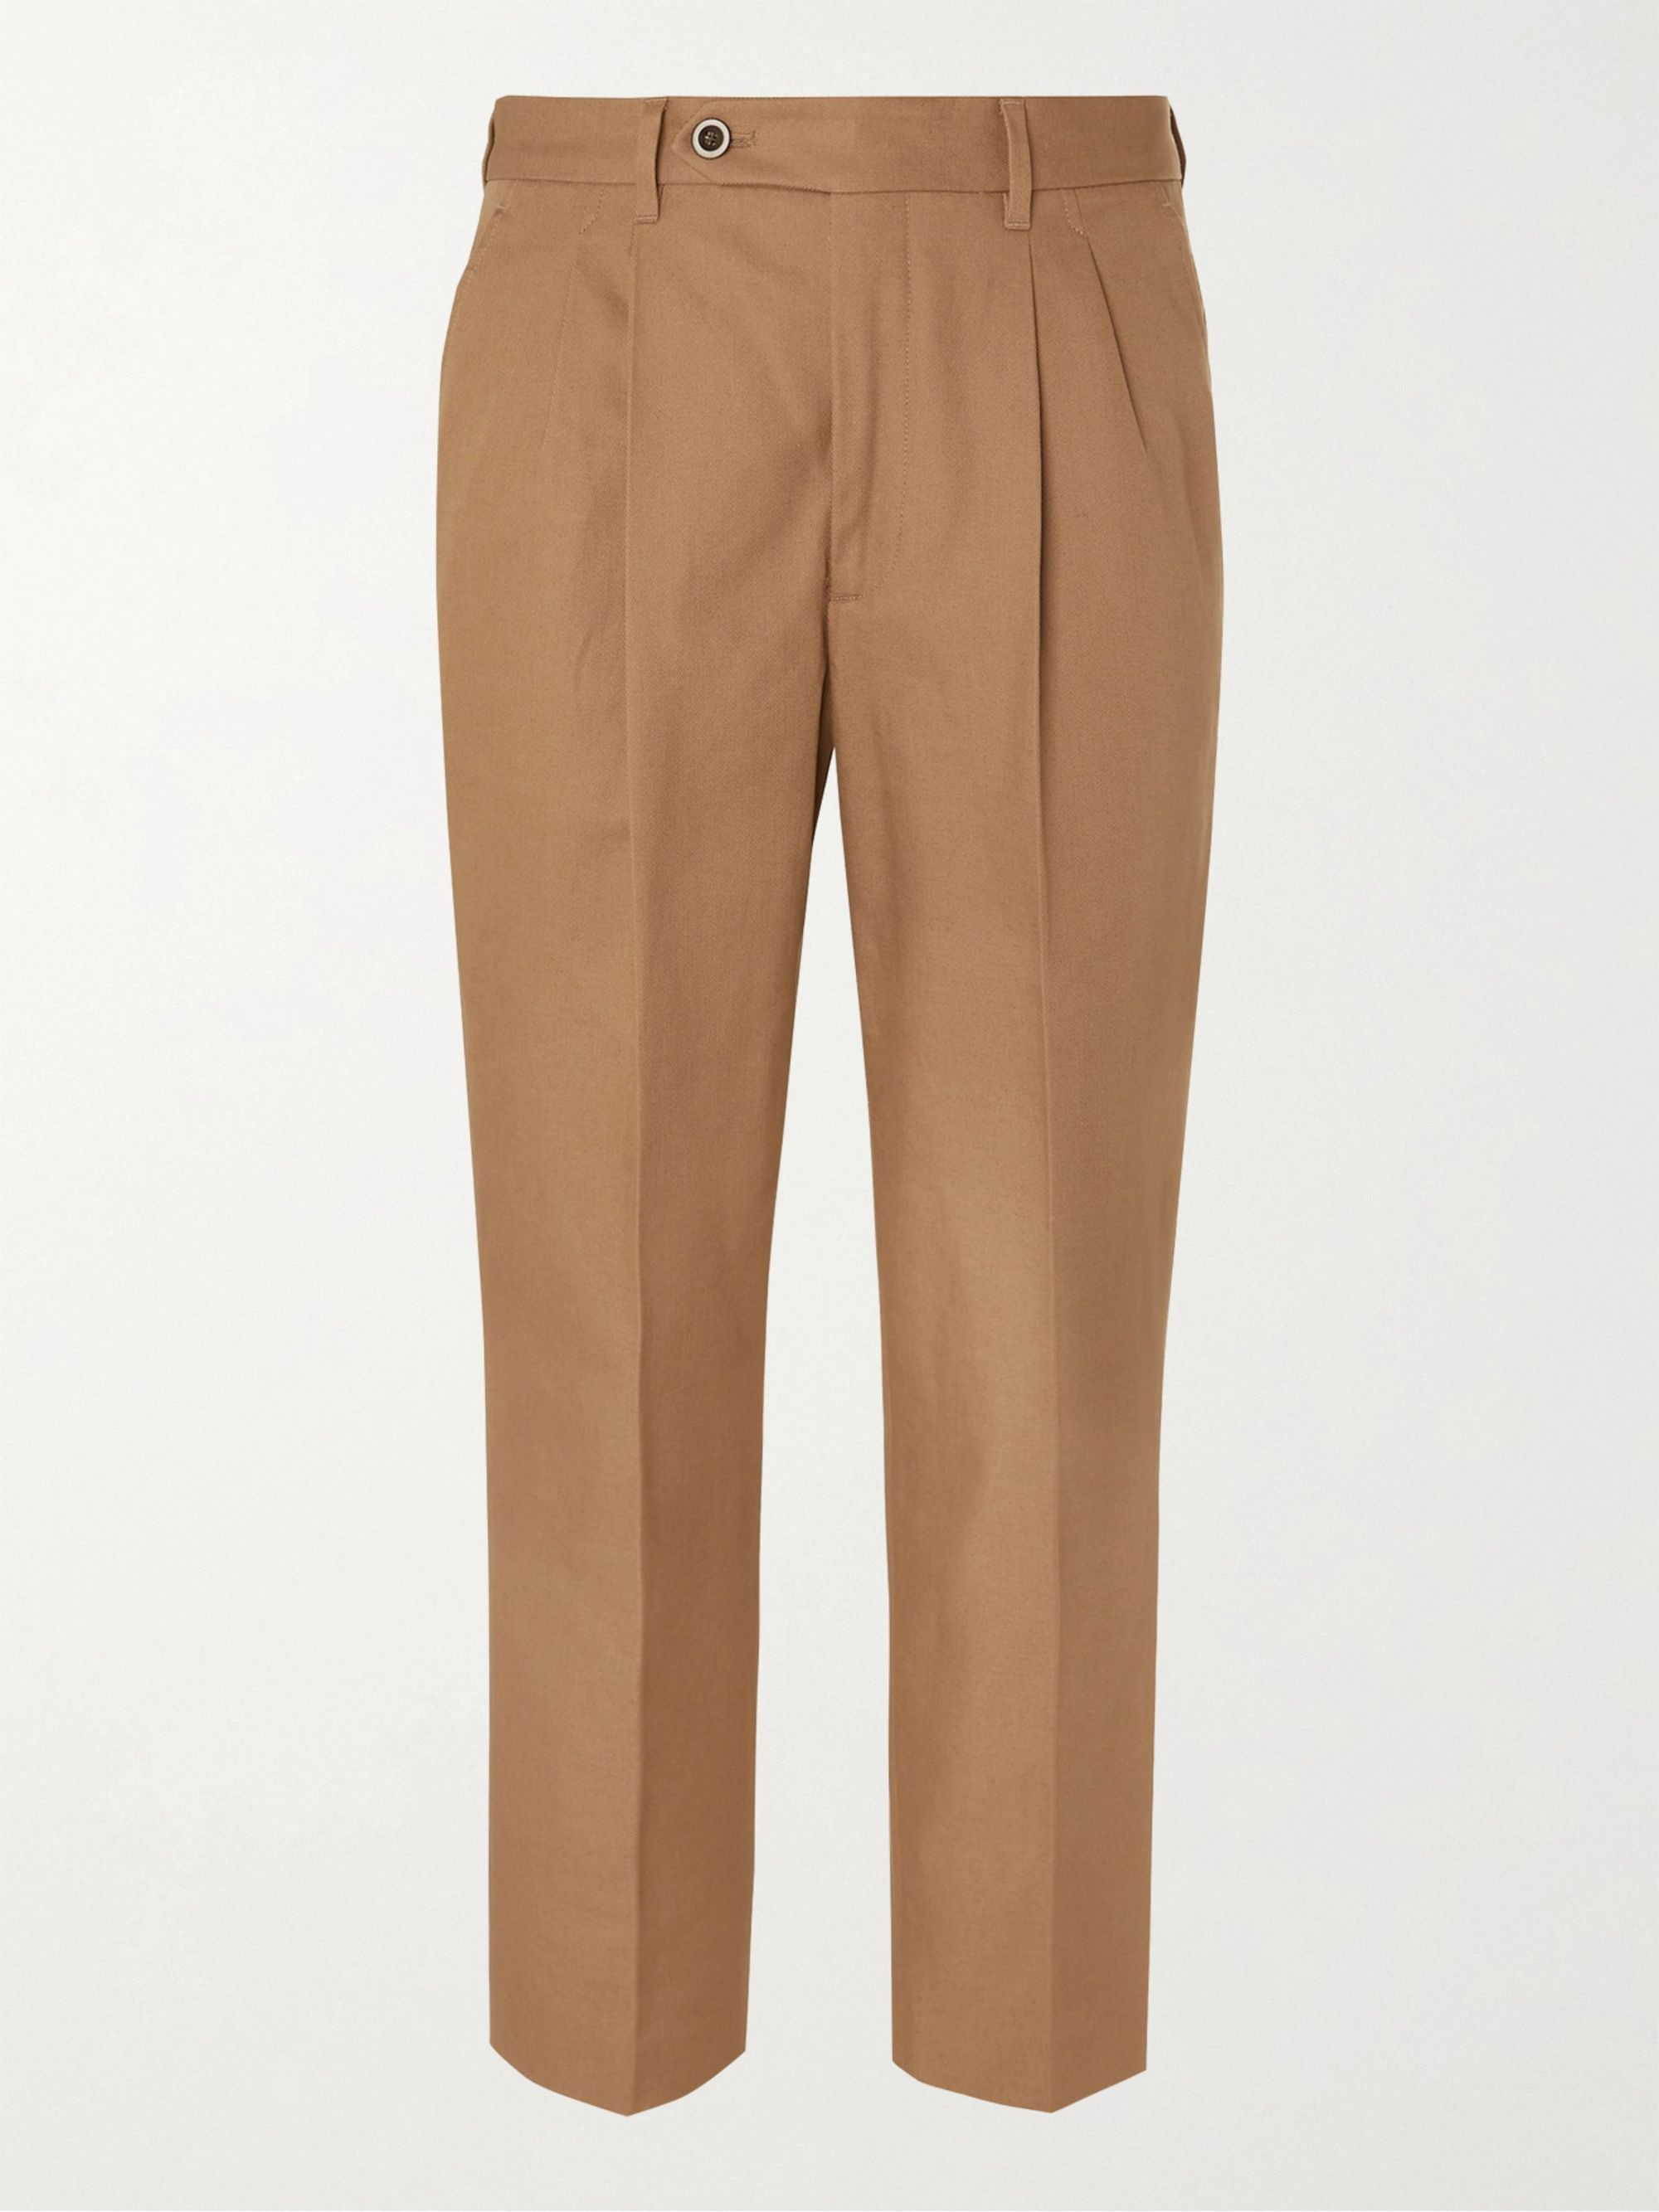 MR P. Tapered Pleated Cotton-Twill Trousers